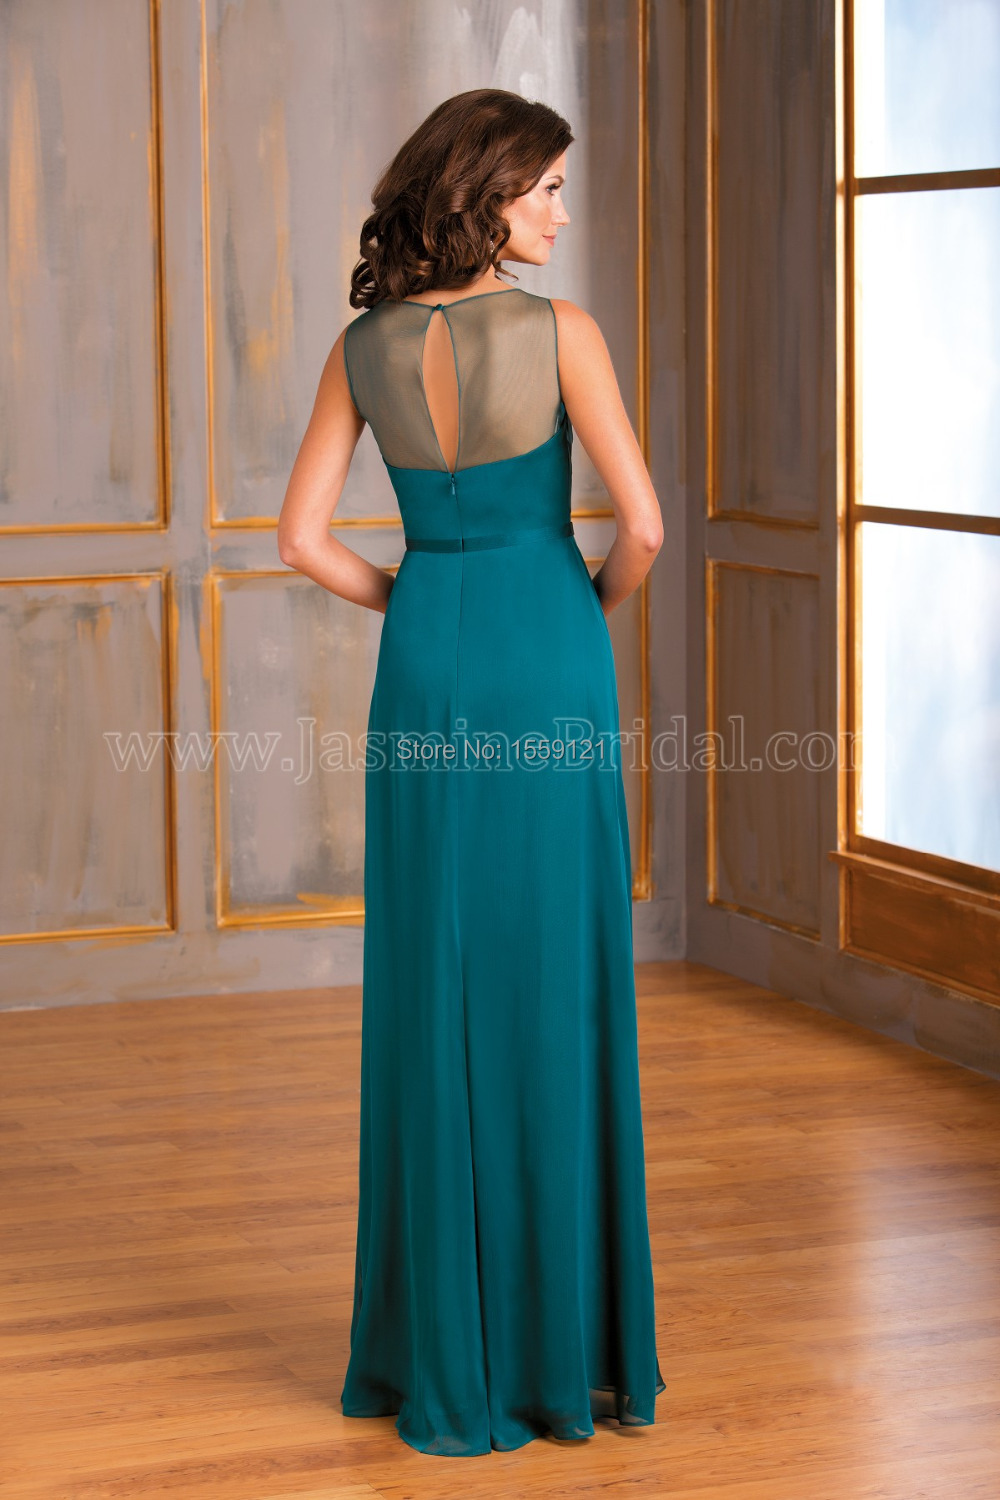 Fancy Modest Mother Of The Bride Dresses Plus Size Component - All ...